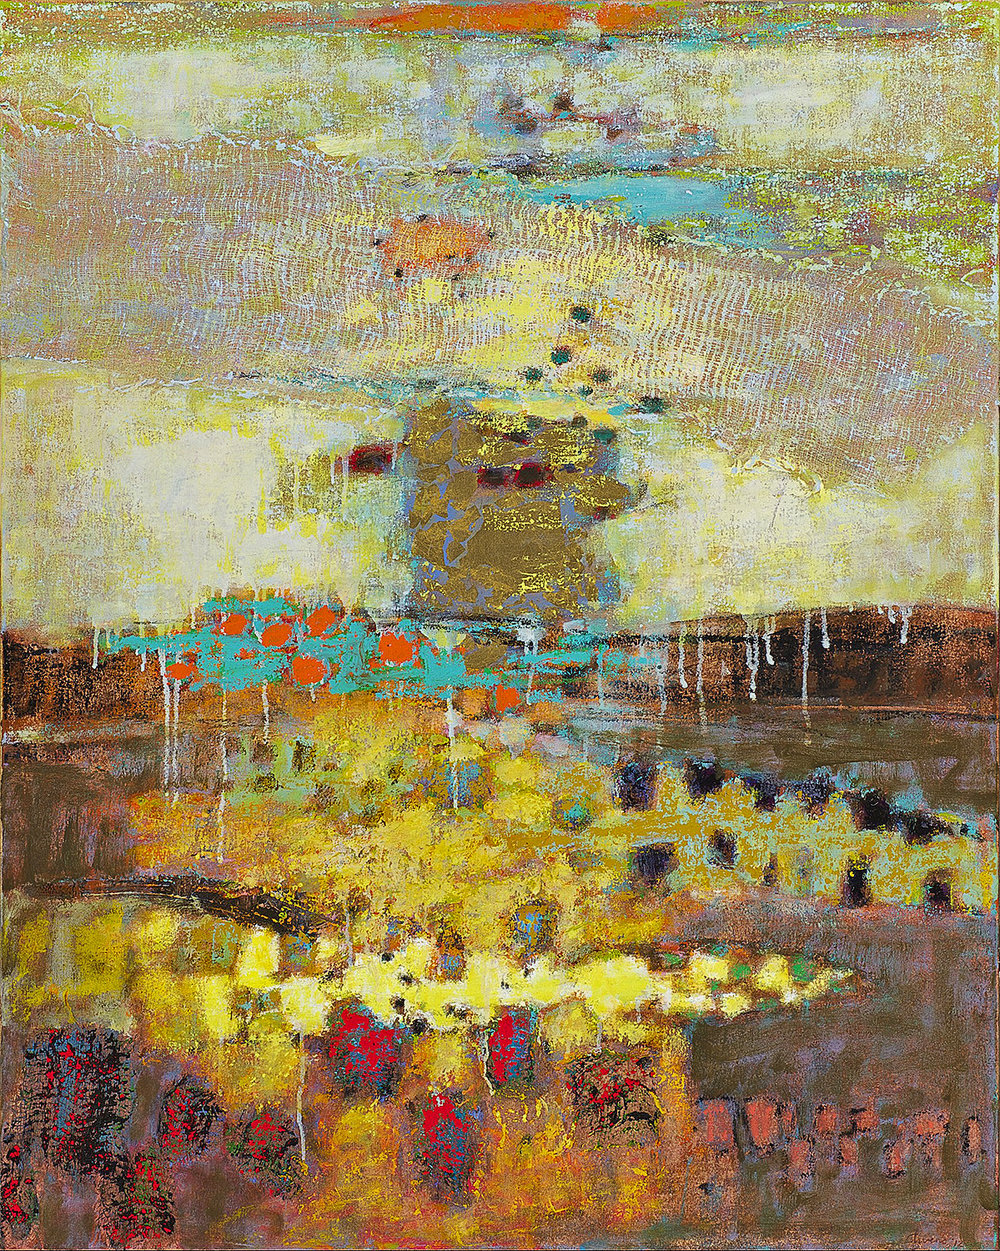 Weaving Worlds   | oil on canvas | 40 x 32"